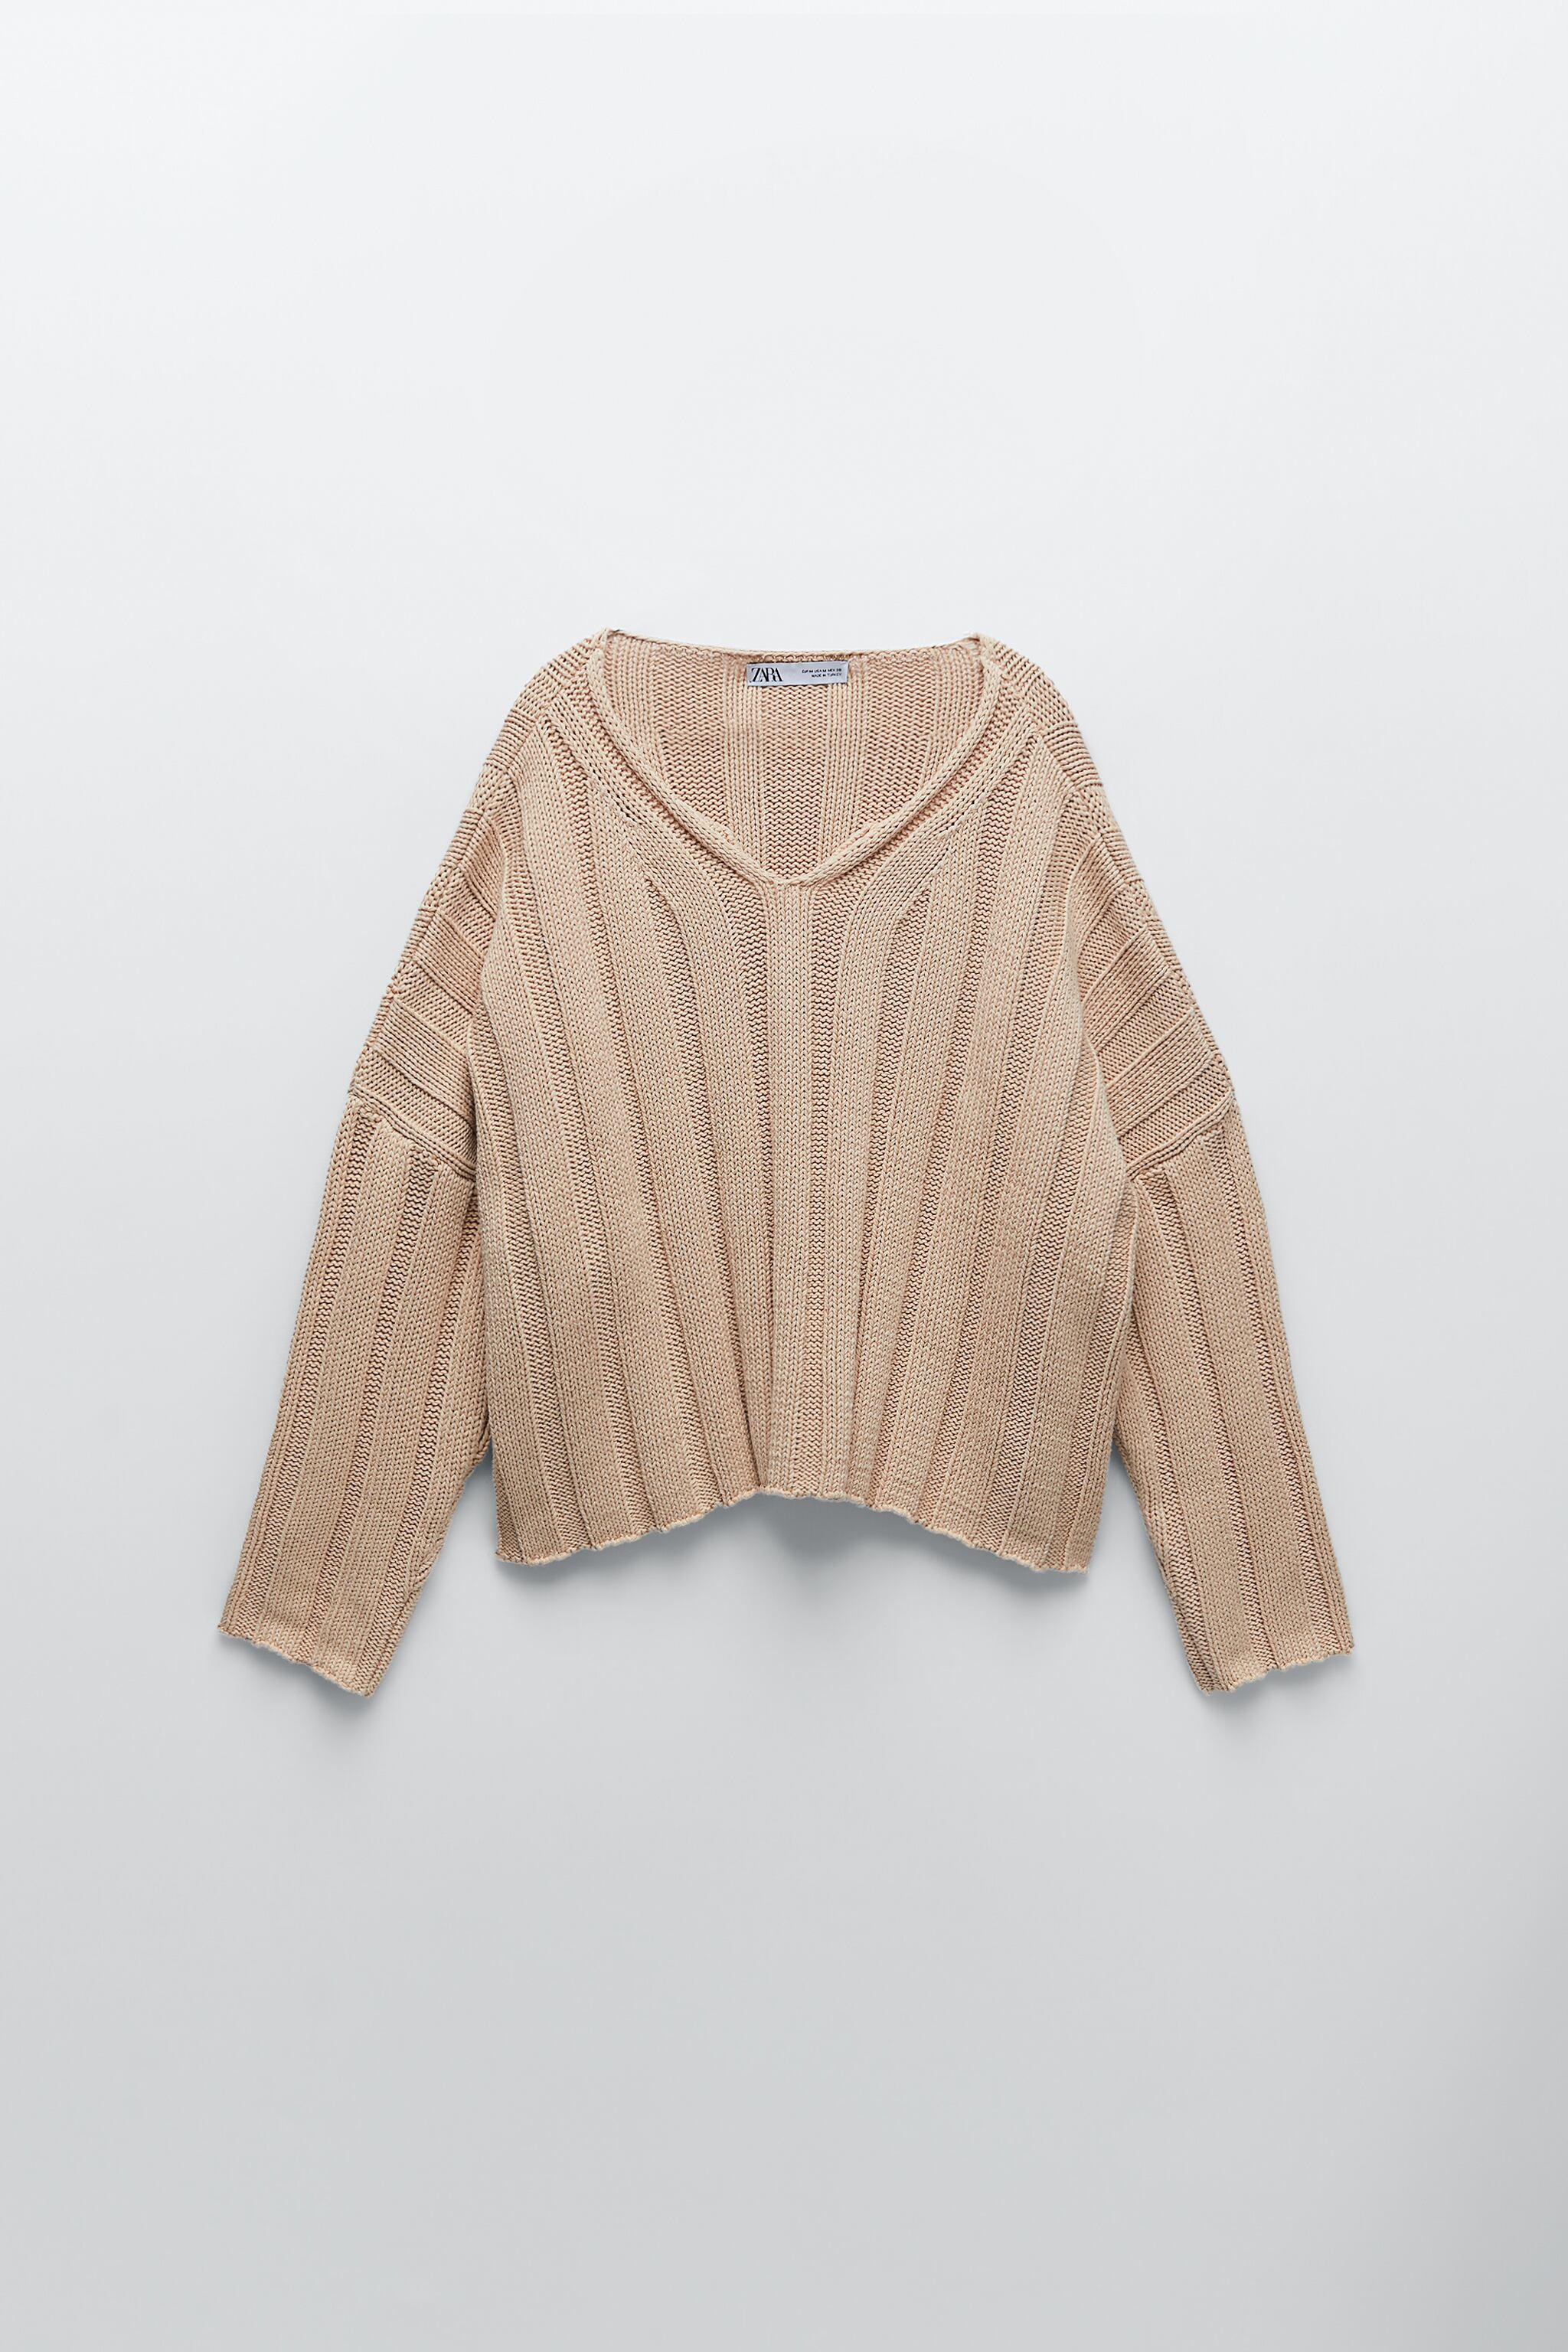 RIBBED KNIT SWEATER 4